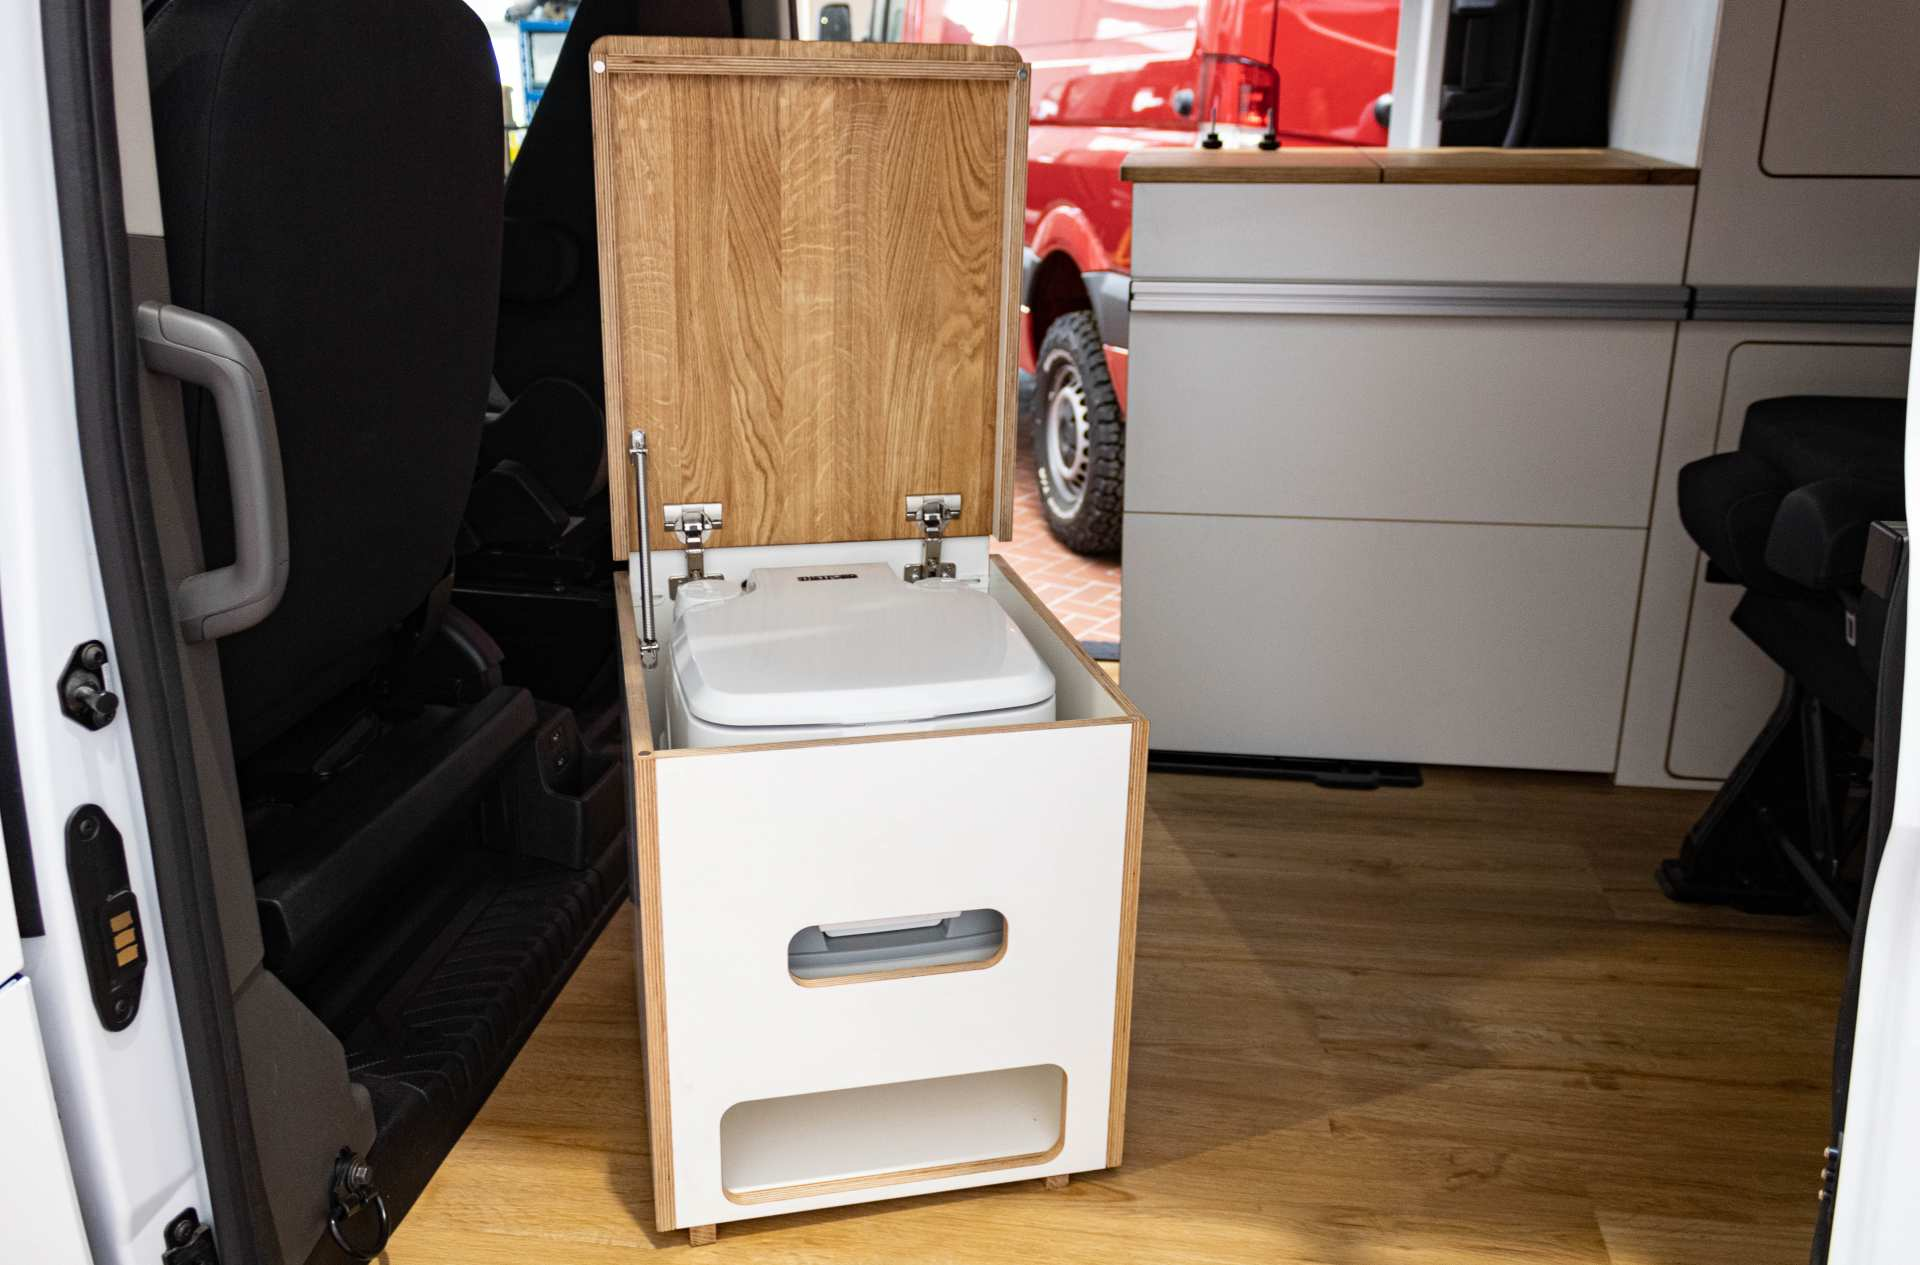 Individualausbau: EXPEDITION Ford Transit Custom, langer Radstand - 20